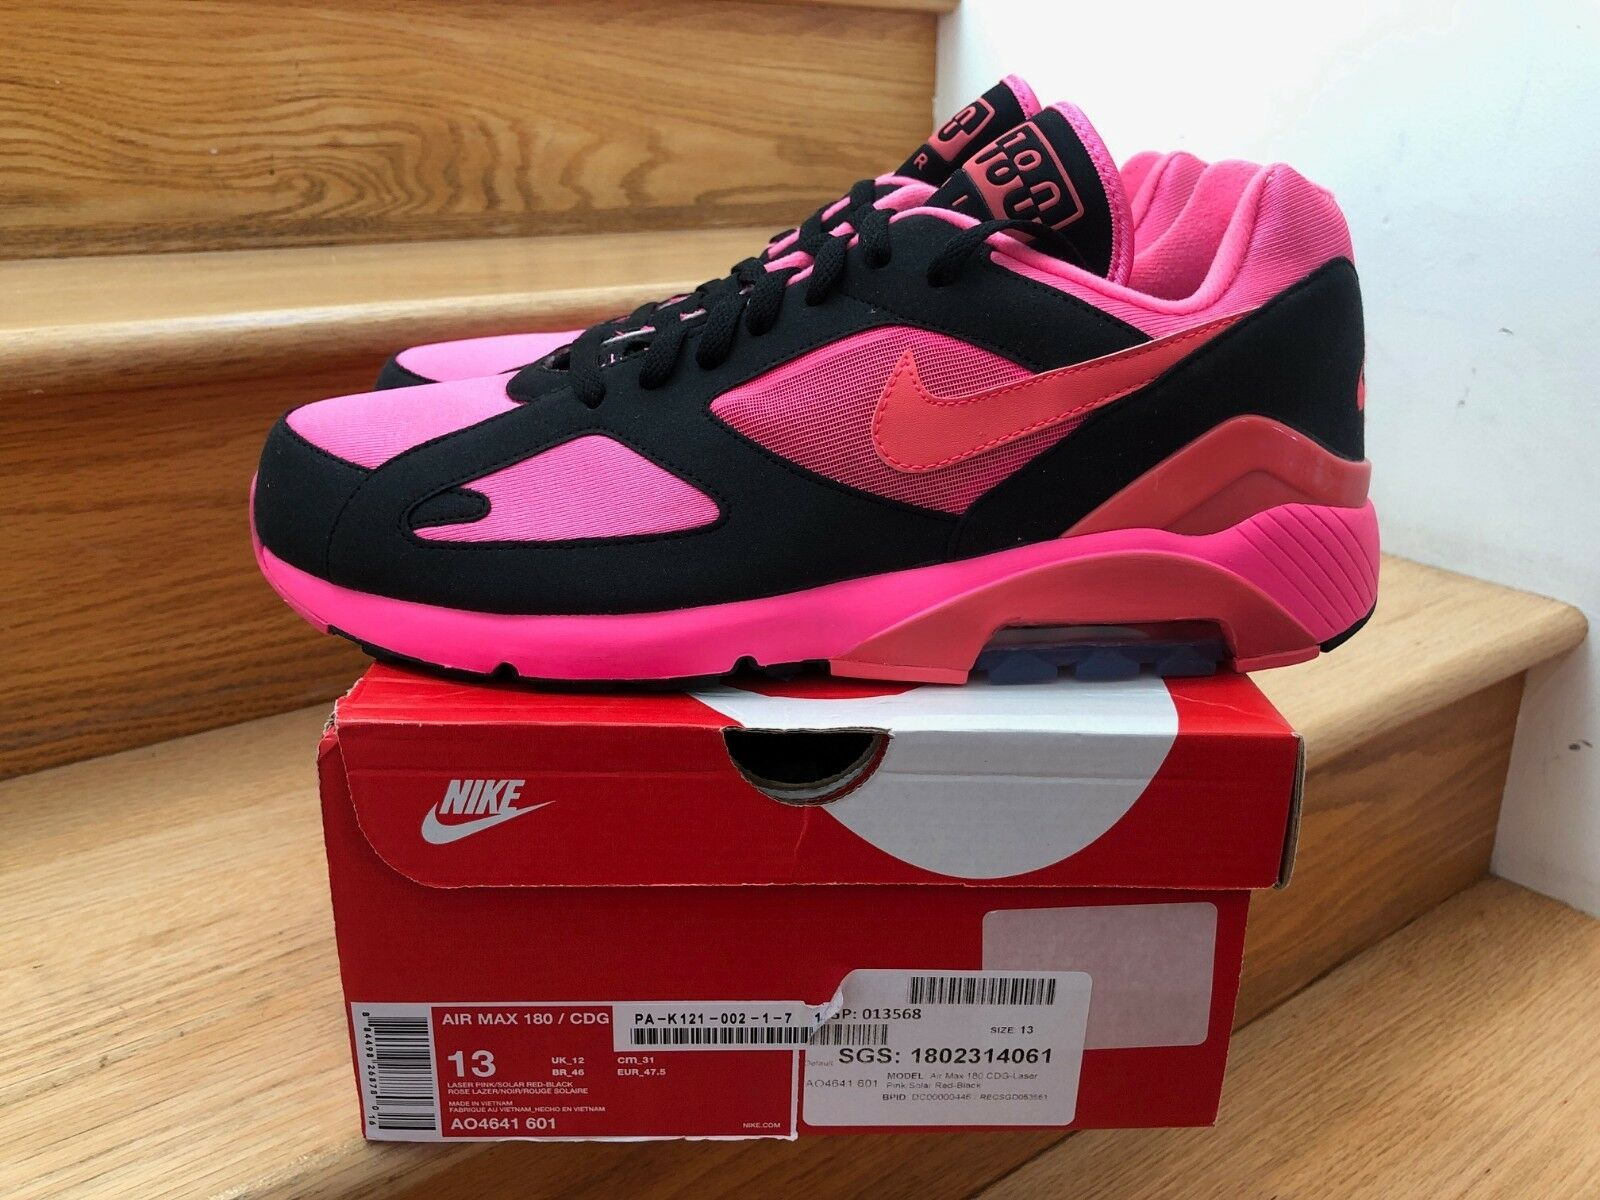 Nike Air Max 180   CDG Pink Black size size size 13 8ea1c2